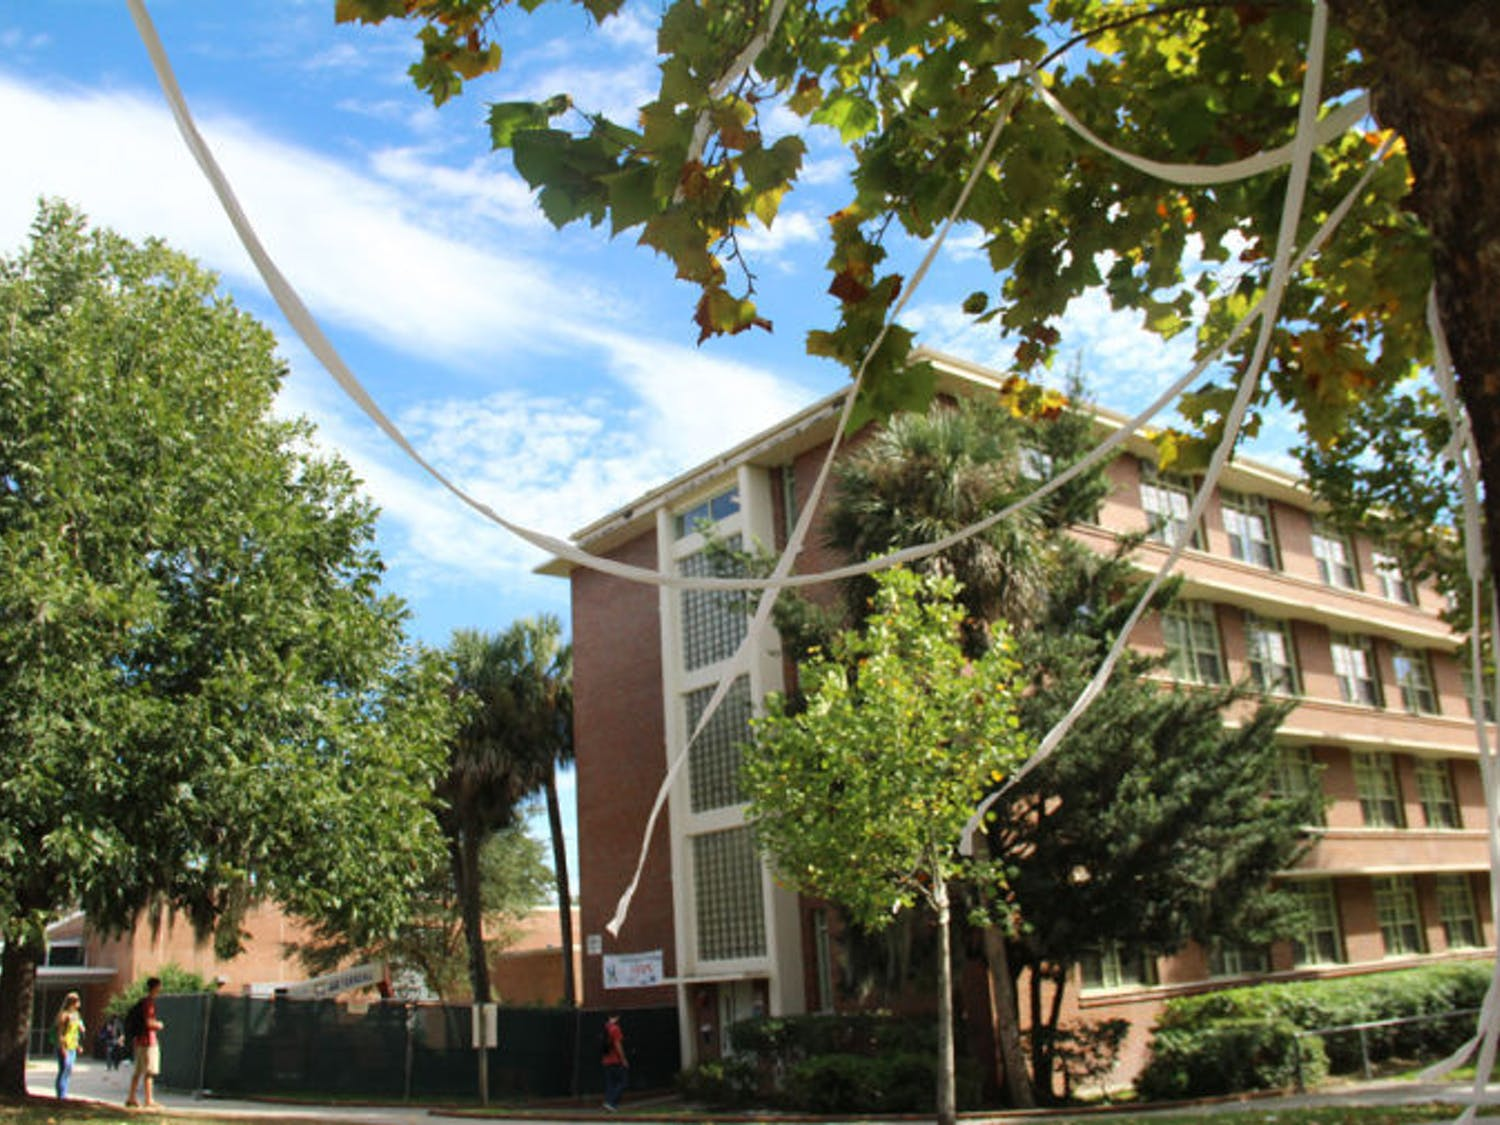 Toilet paper hangs from trees in front of Broward Hall on Wednesday. The incident followed pranks pulled in the residence hall earlier this semester that led to security cameras being installed.